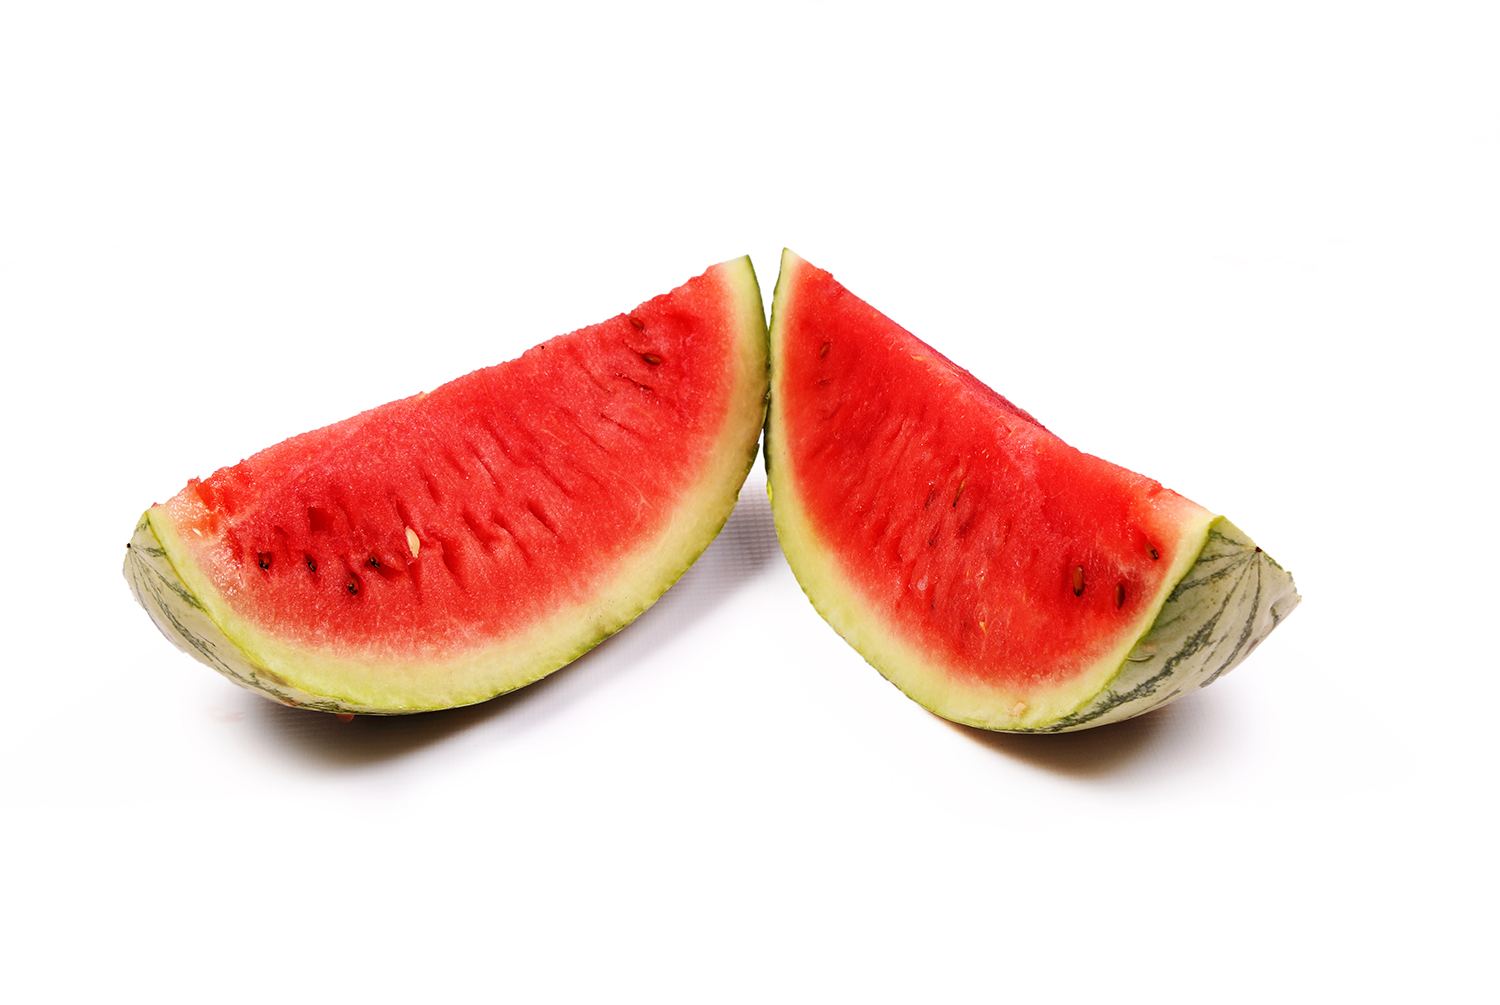 Two cut pieces of watermelon fruit on white background